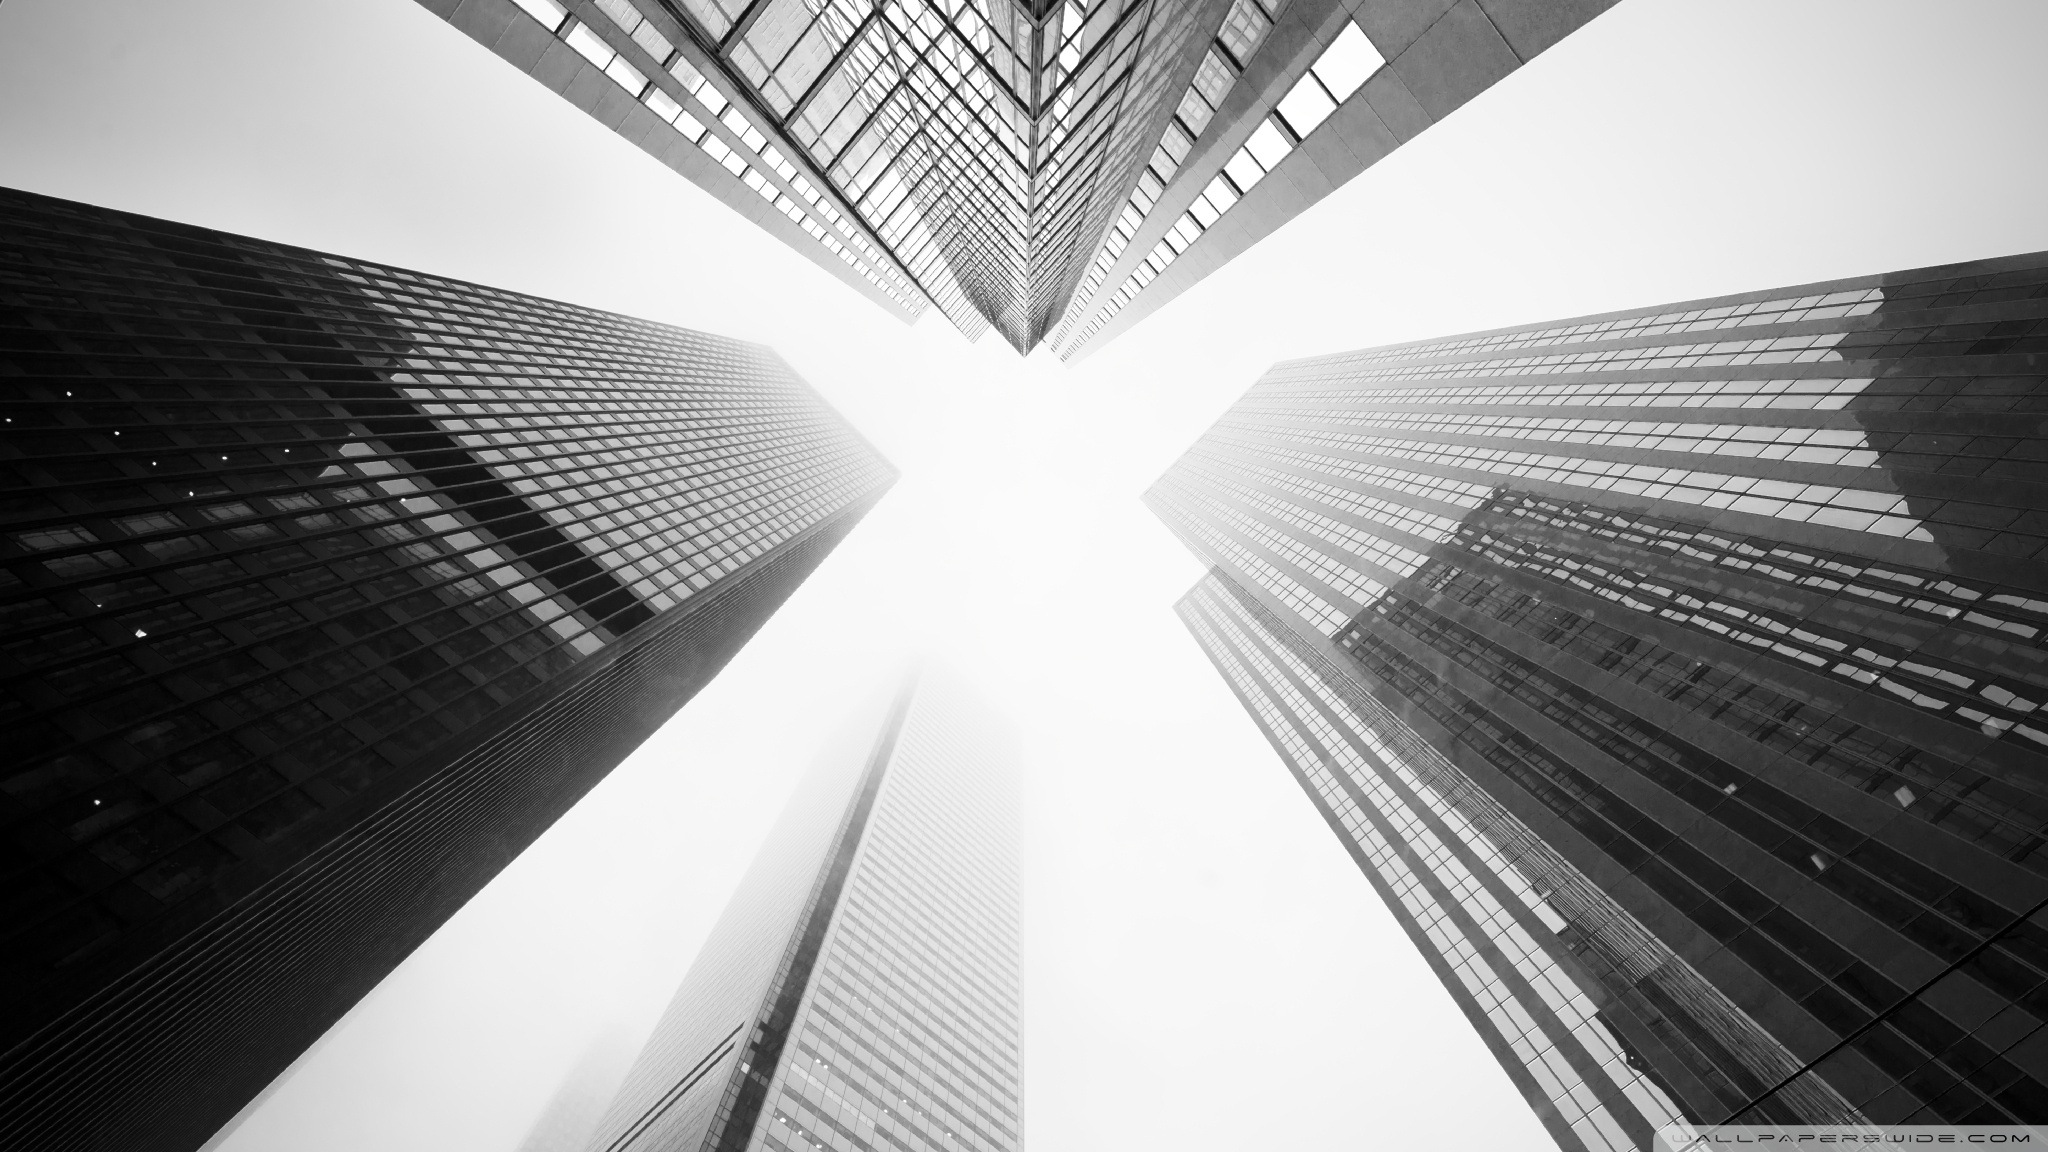 toronto skyscrapers black and white ❤ 4k hd desktop wallpaper for